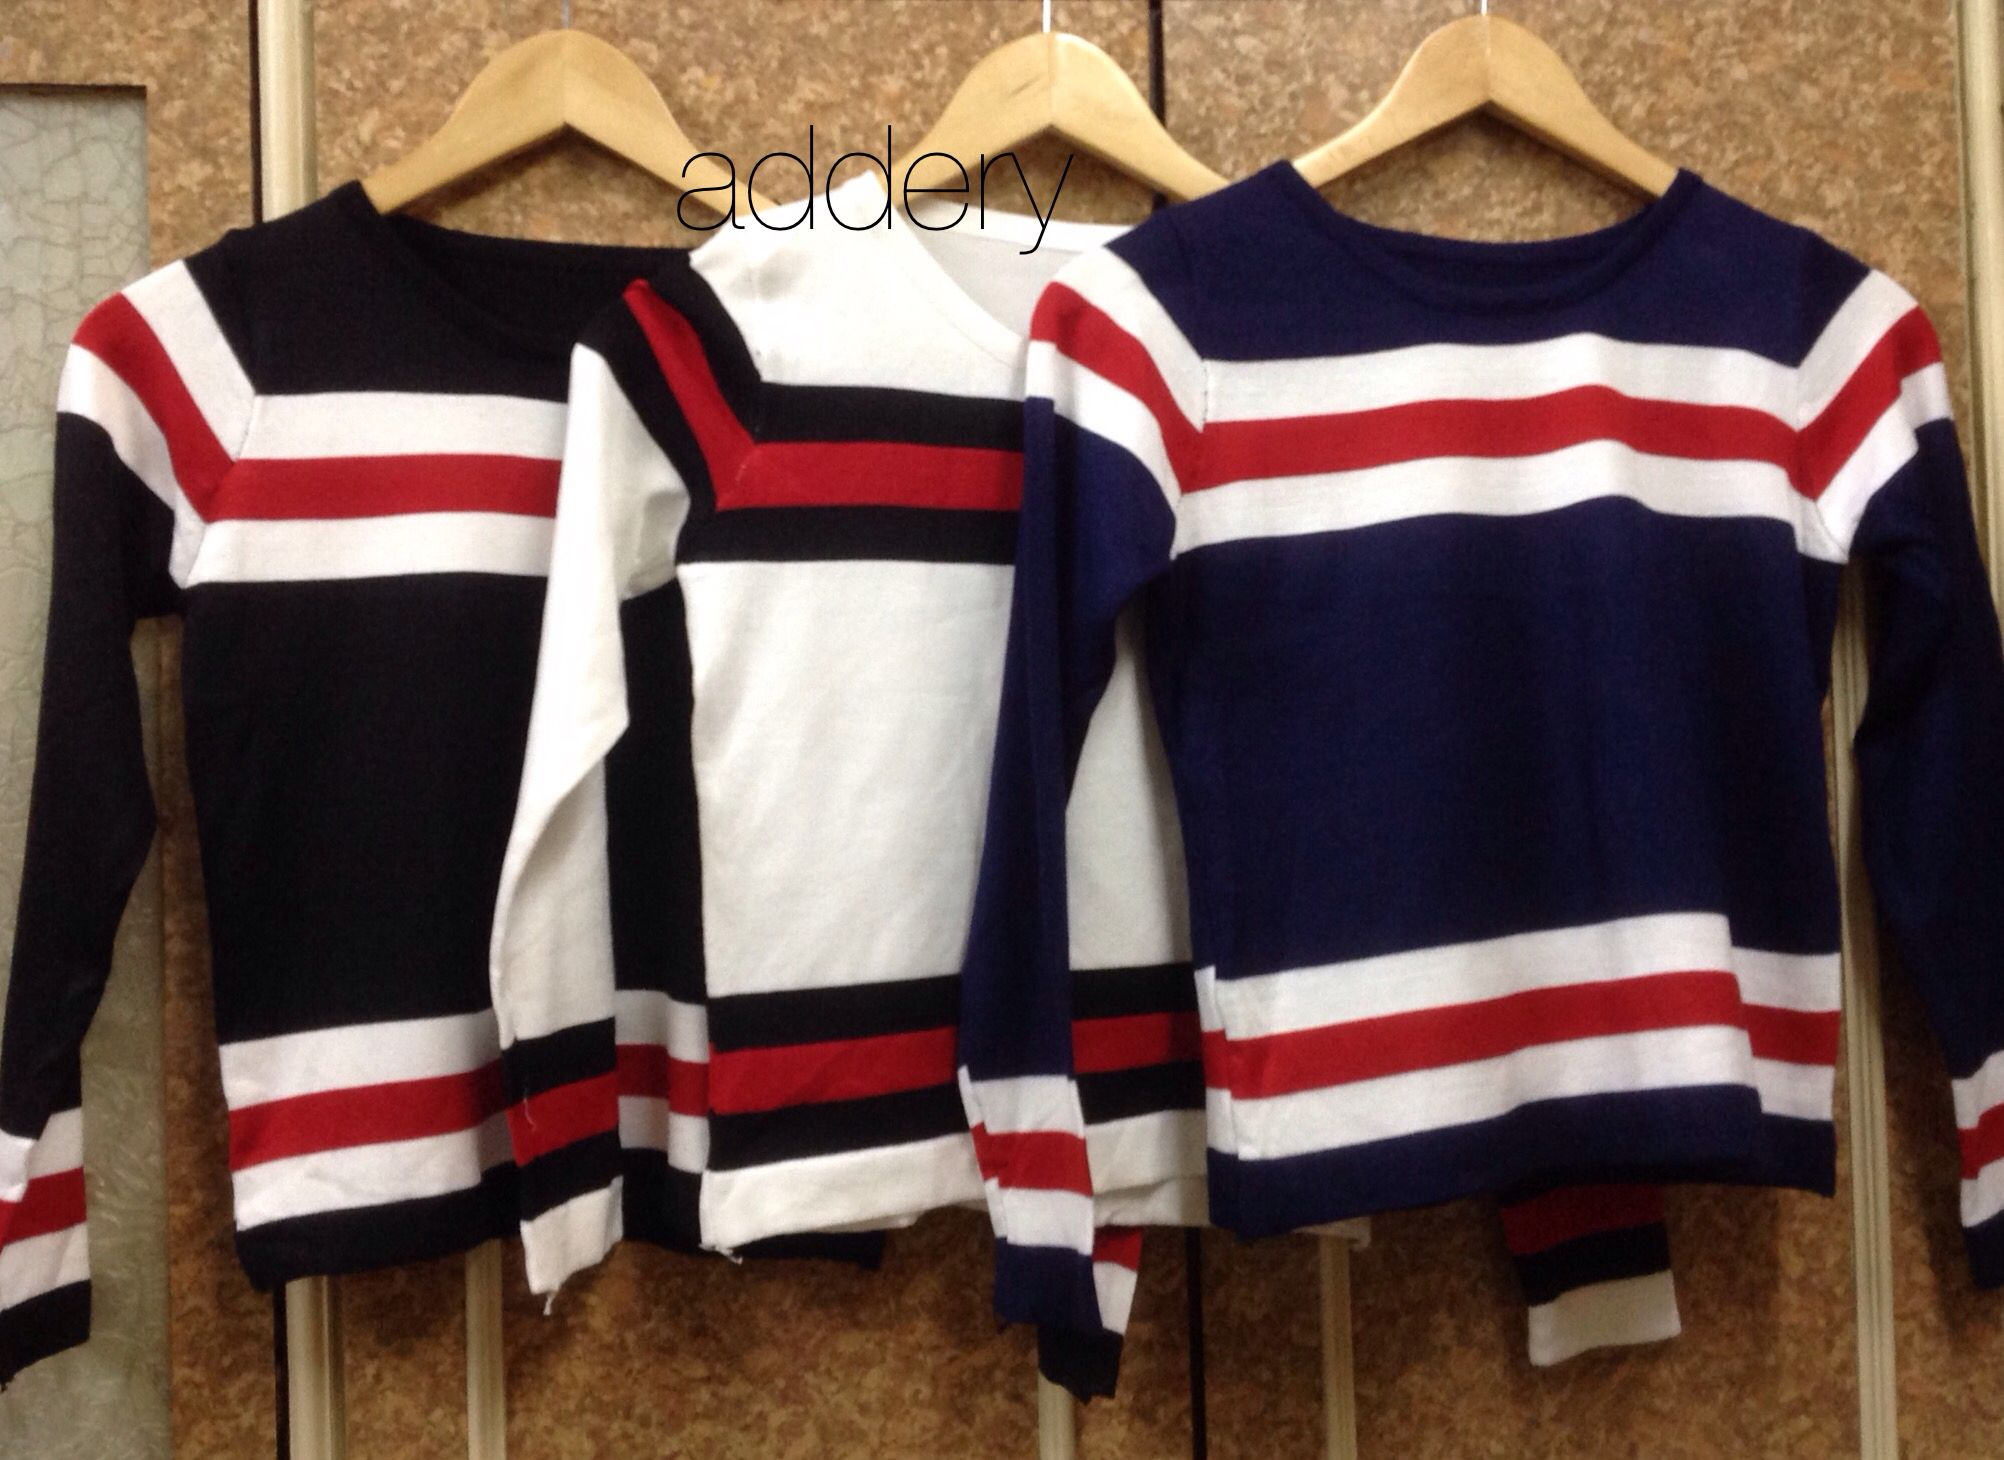 Stripes Full Sleeves Tshirt#Knit Fabric#Comfortable#Casual#Winter Wear#Blue,White And Black Color#Trendy#Western Wear#Fashion#Addery#Keep